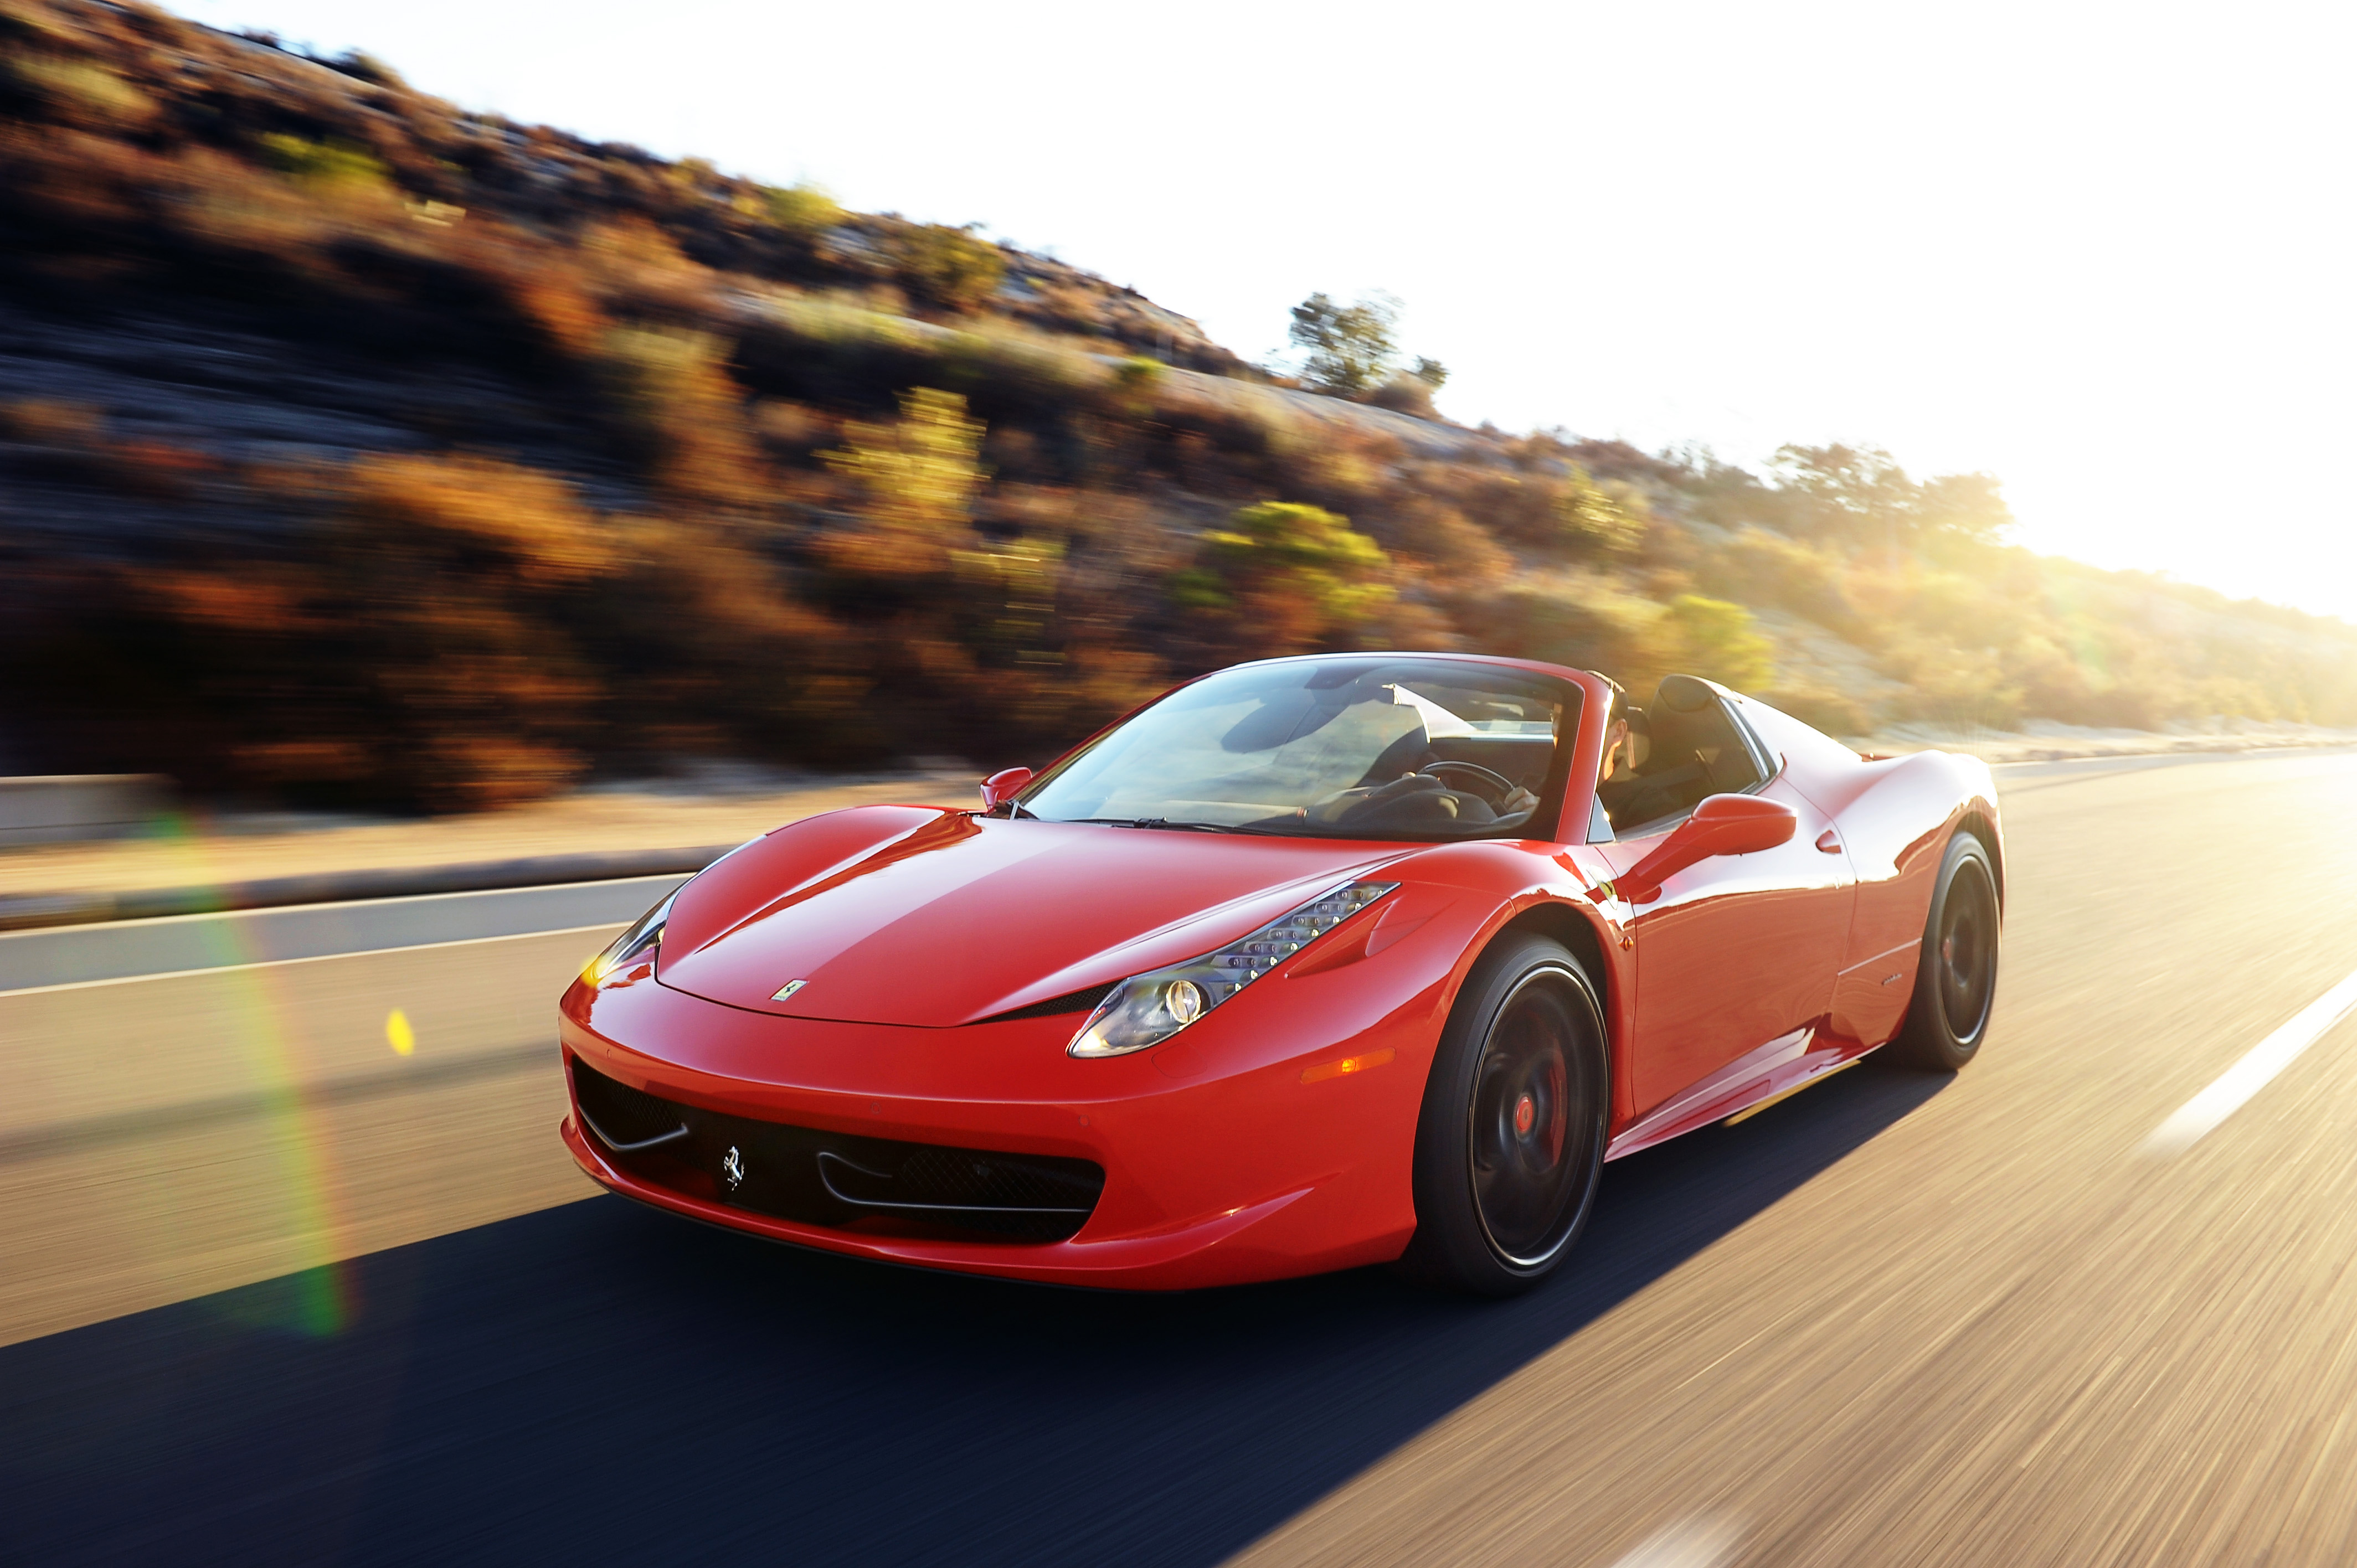 Ferrari 458 Italia Spider Wallpaper Hd Hennessey Set To Unleash 738 Hp Twin Turbo Ferrari 458 At